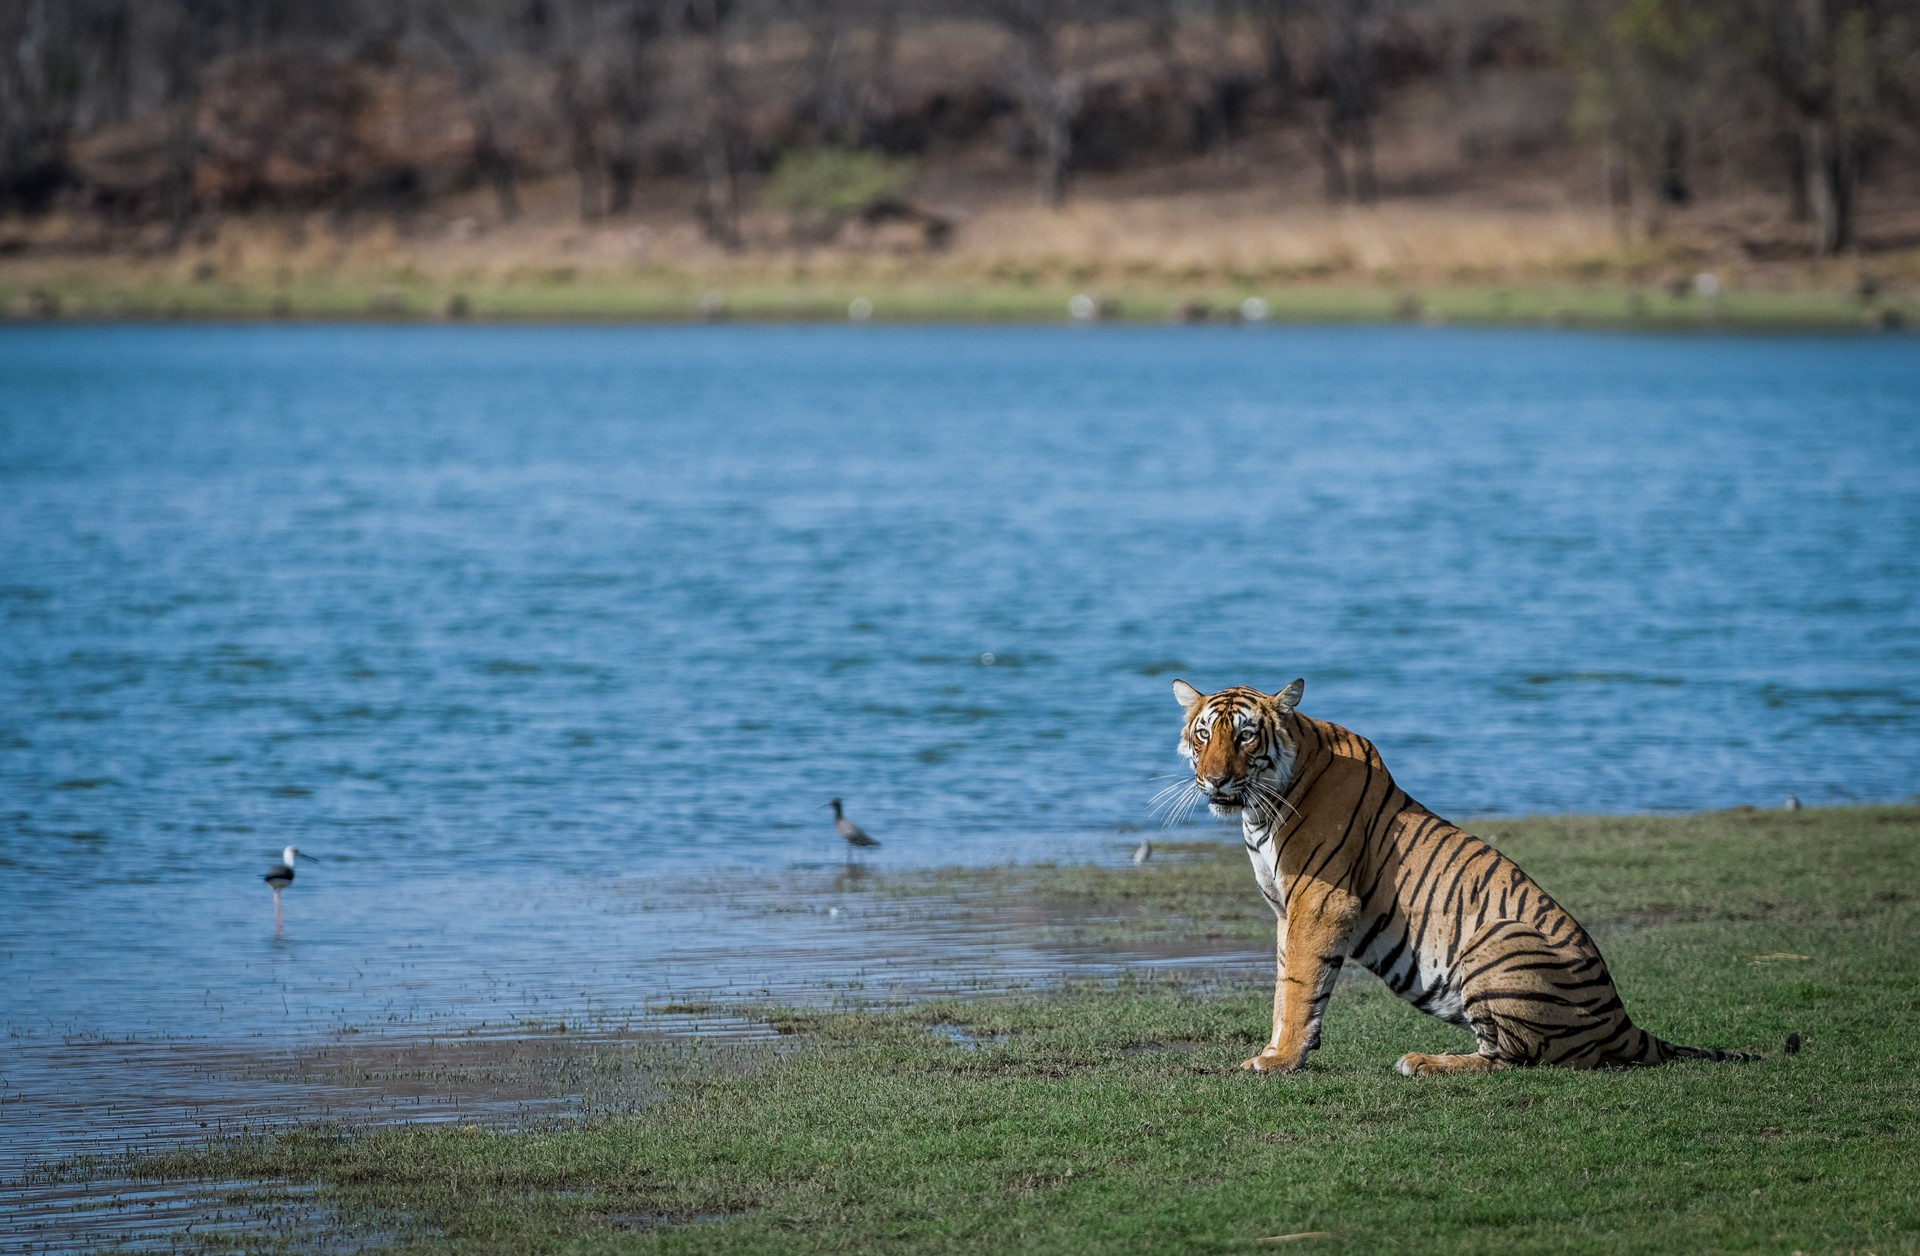 Tiger in bandhavgarh national park india